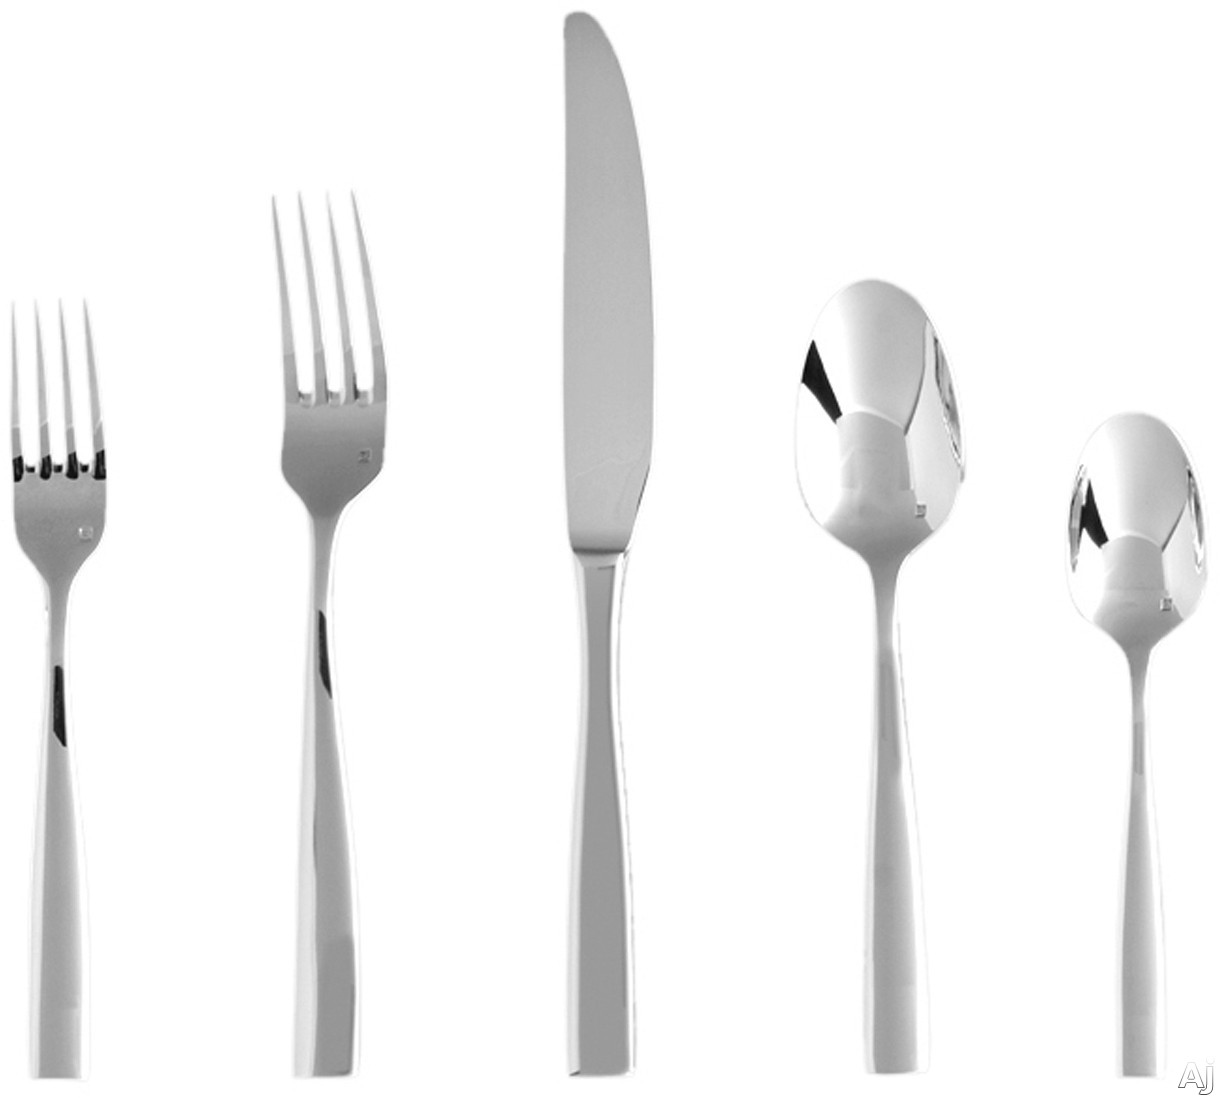 Fortessa 5PPS10220PC Lucca Stainless Steel 20-Piece Flatware Set with Heavy Gauge Stainless Steel and Balanced Design